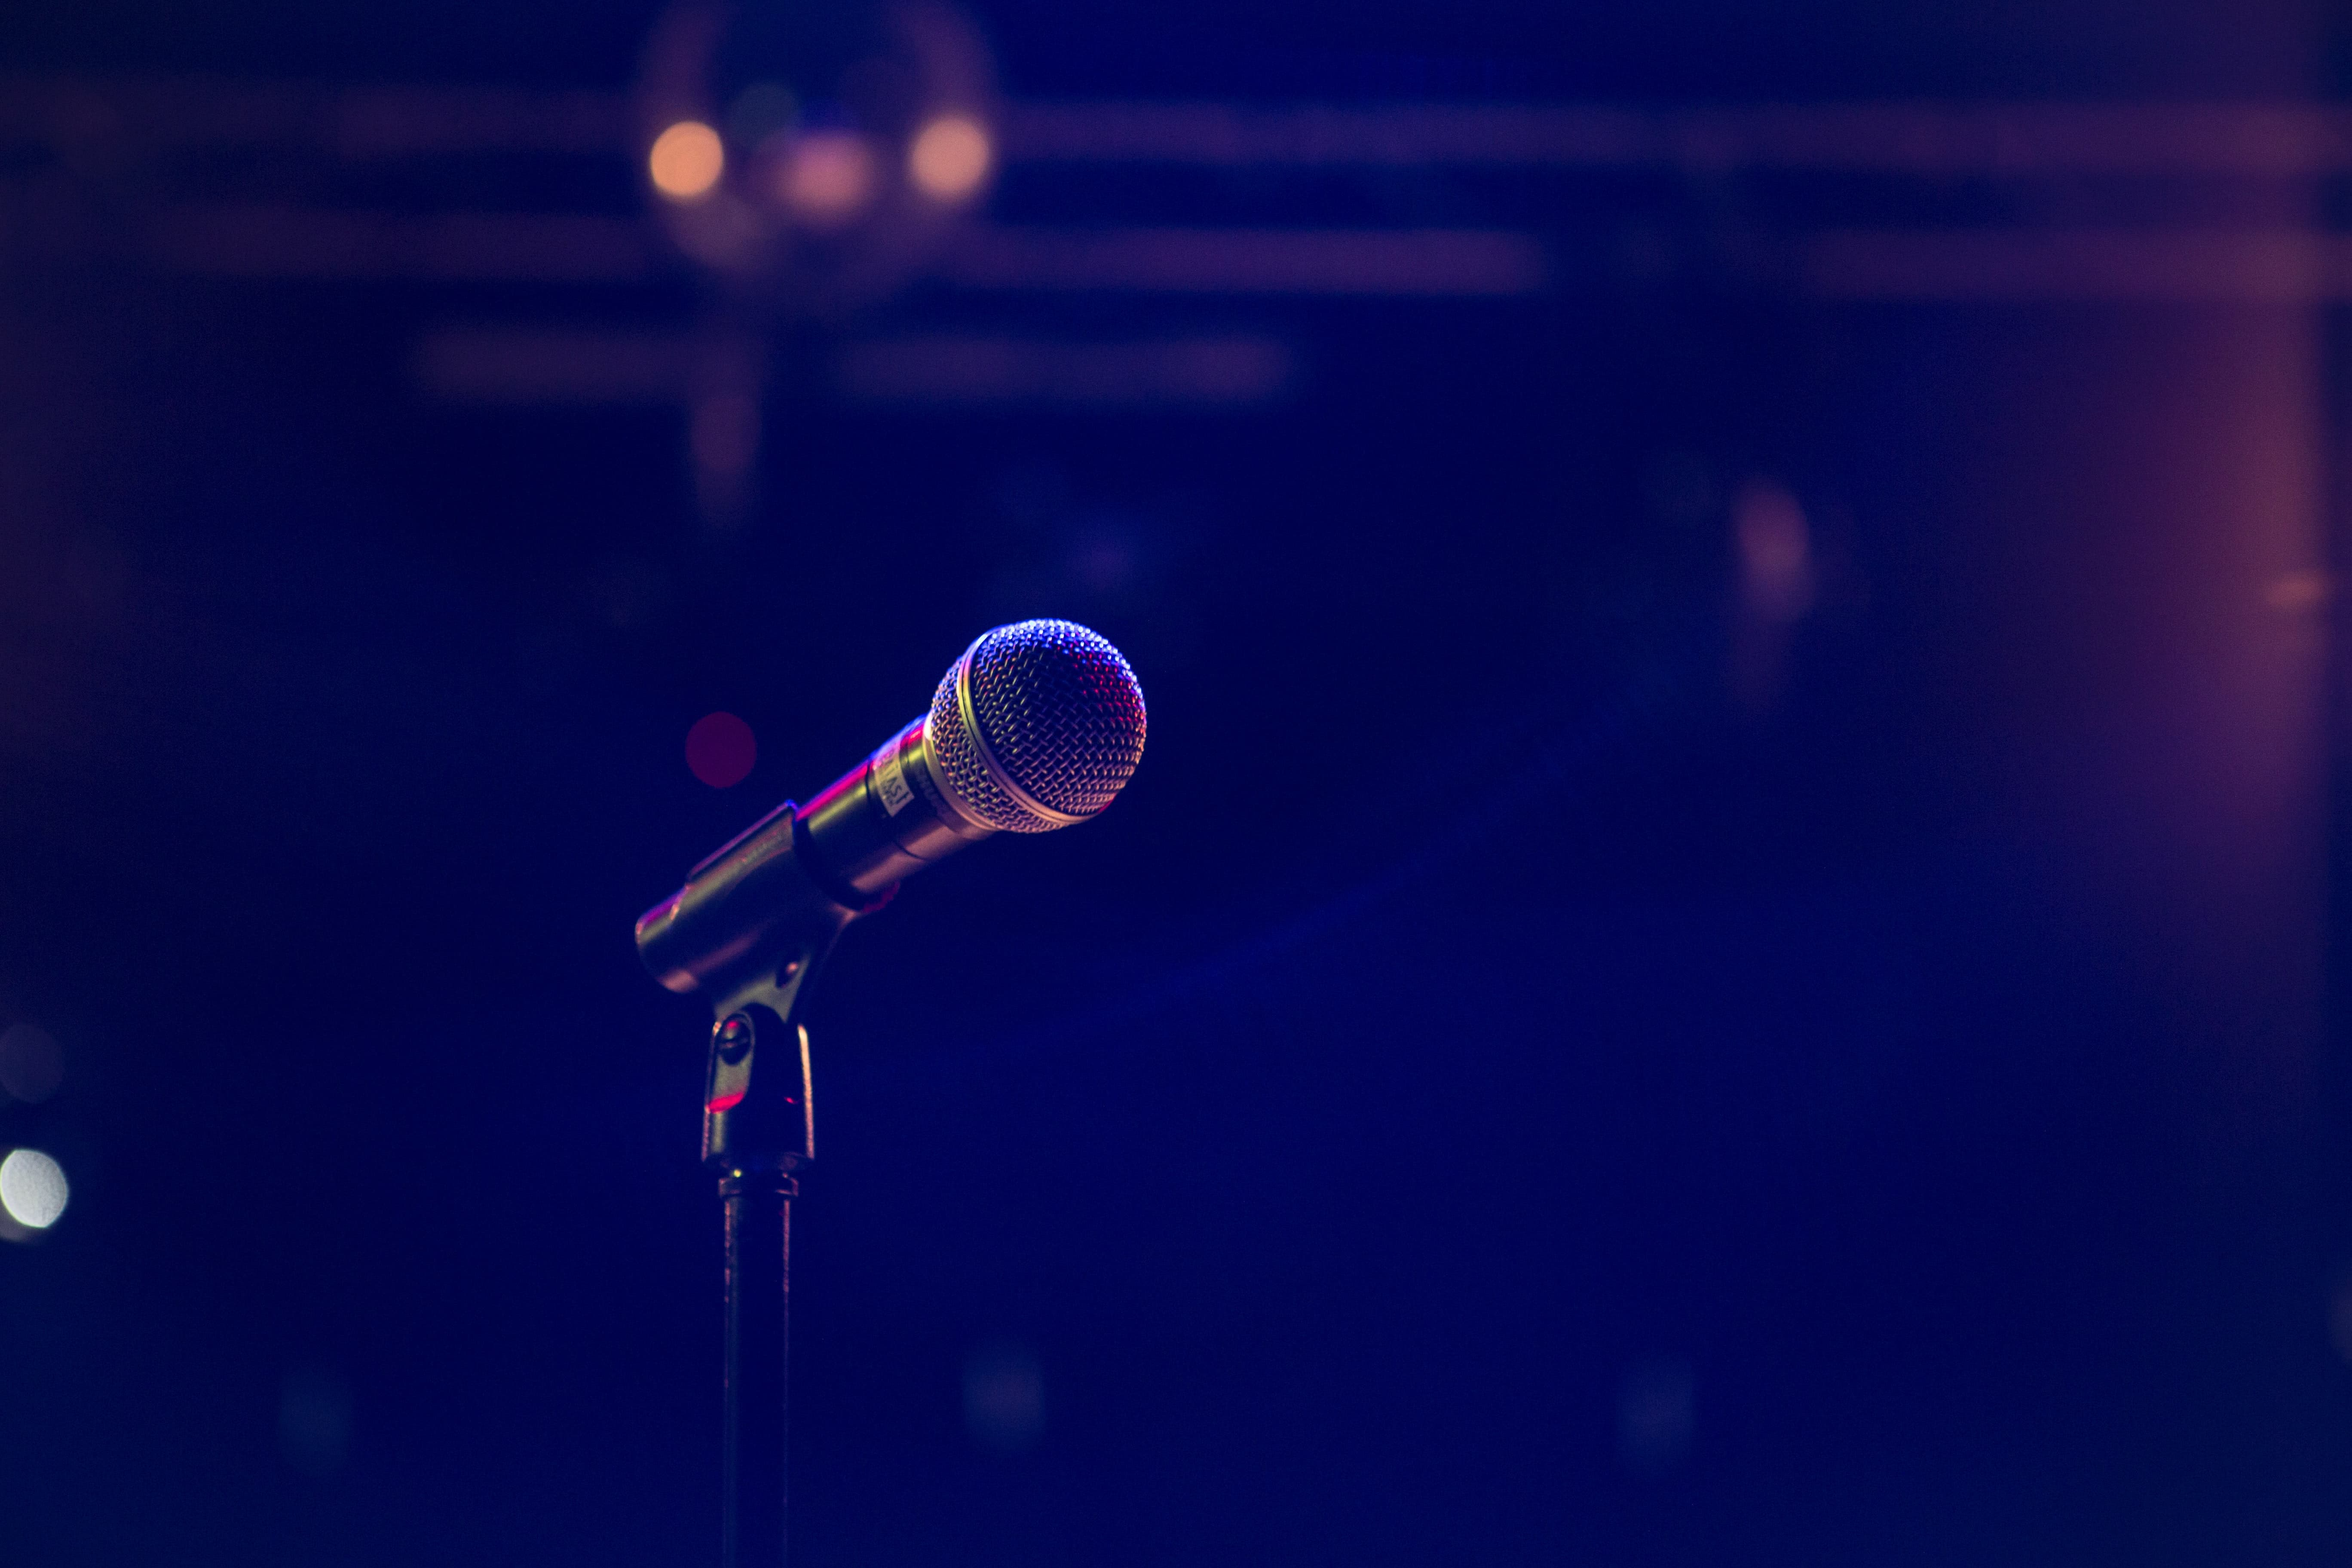 A microphone on a stand set along on a dramatically lit stage